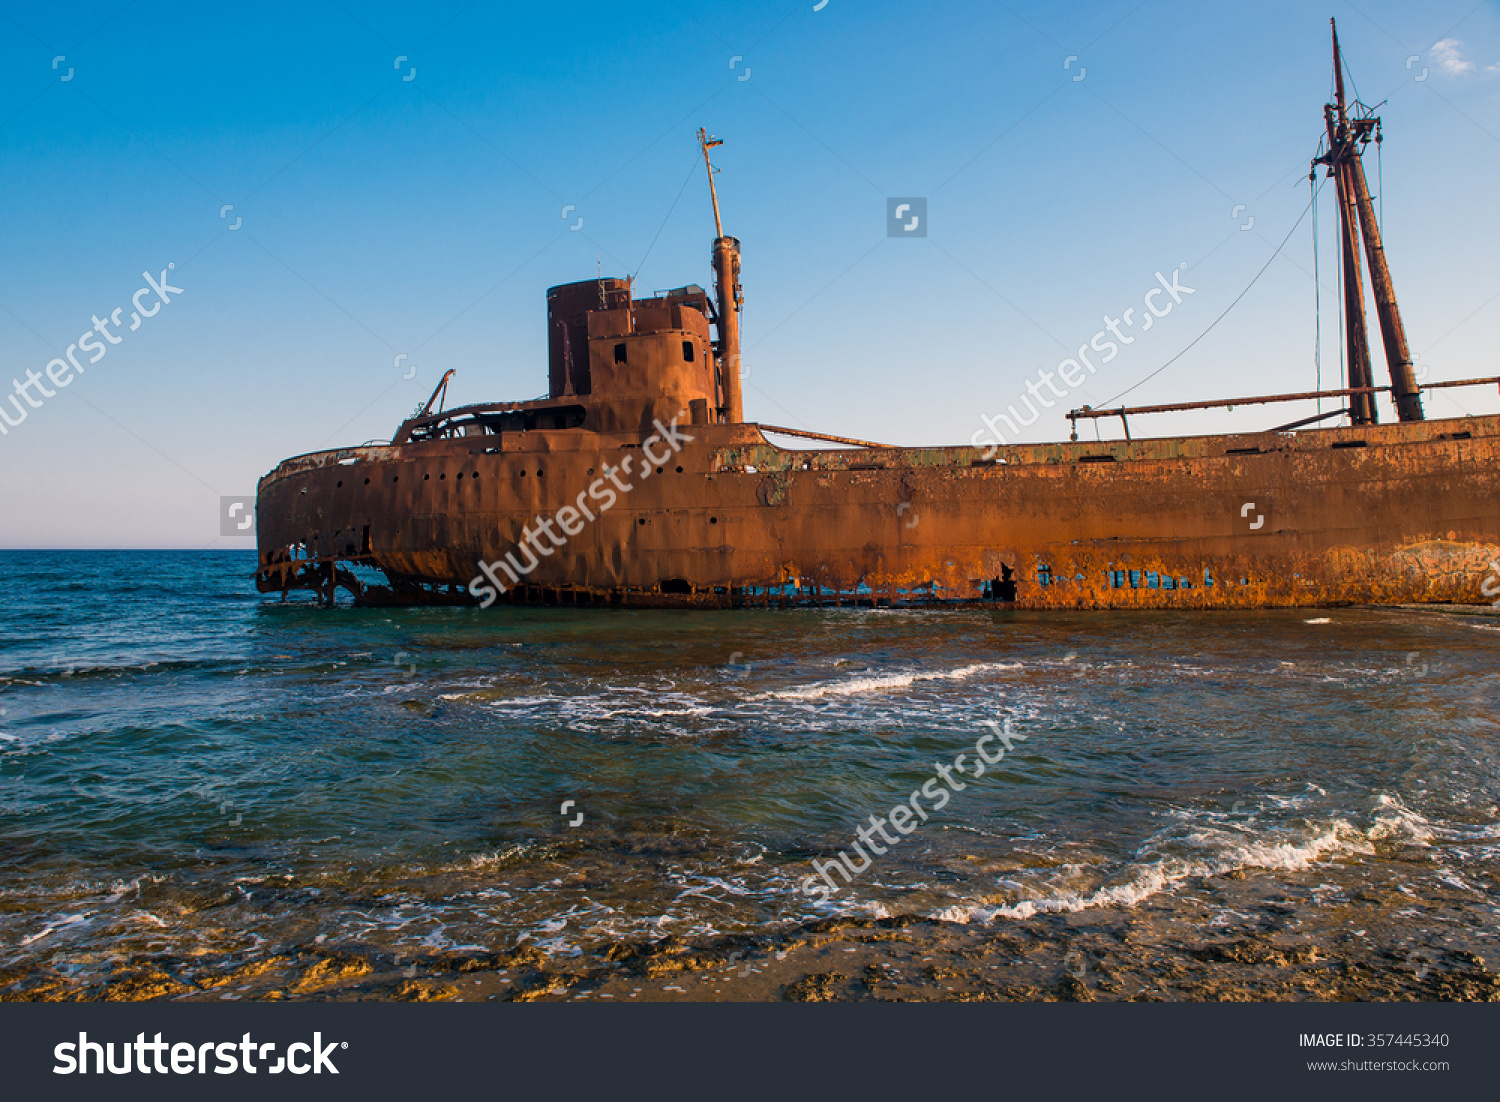 Old Ship Ancient Shipwrecks Sea Sunset Stock Photo 357445340.